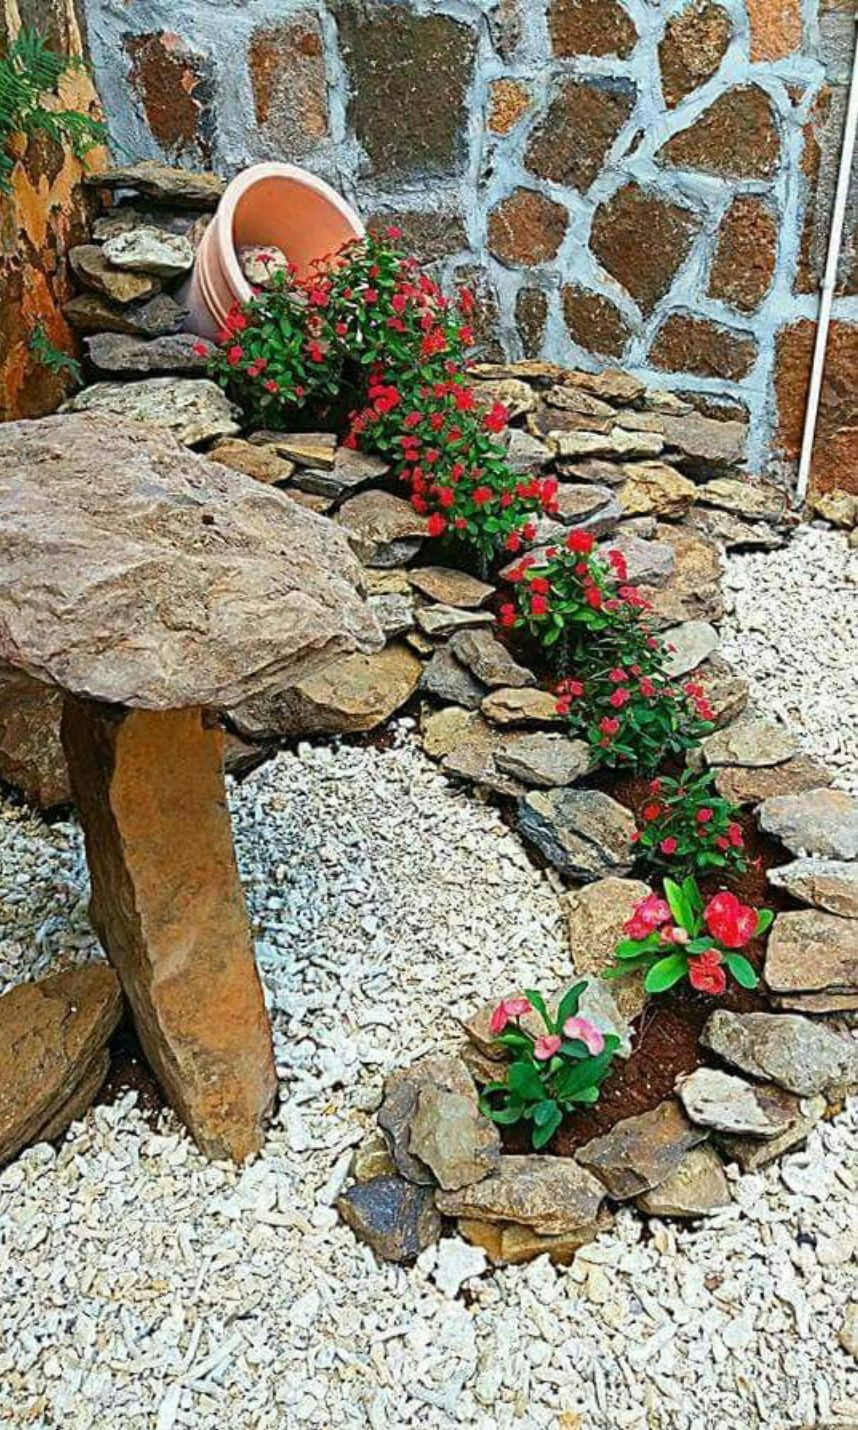 Find This Pin And More On Landscaping Ideas By Karendunn71697.